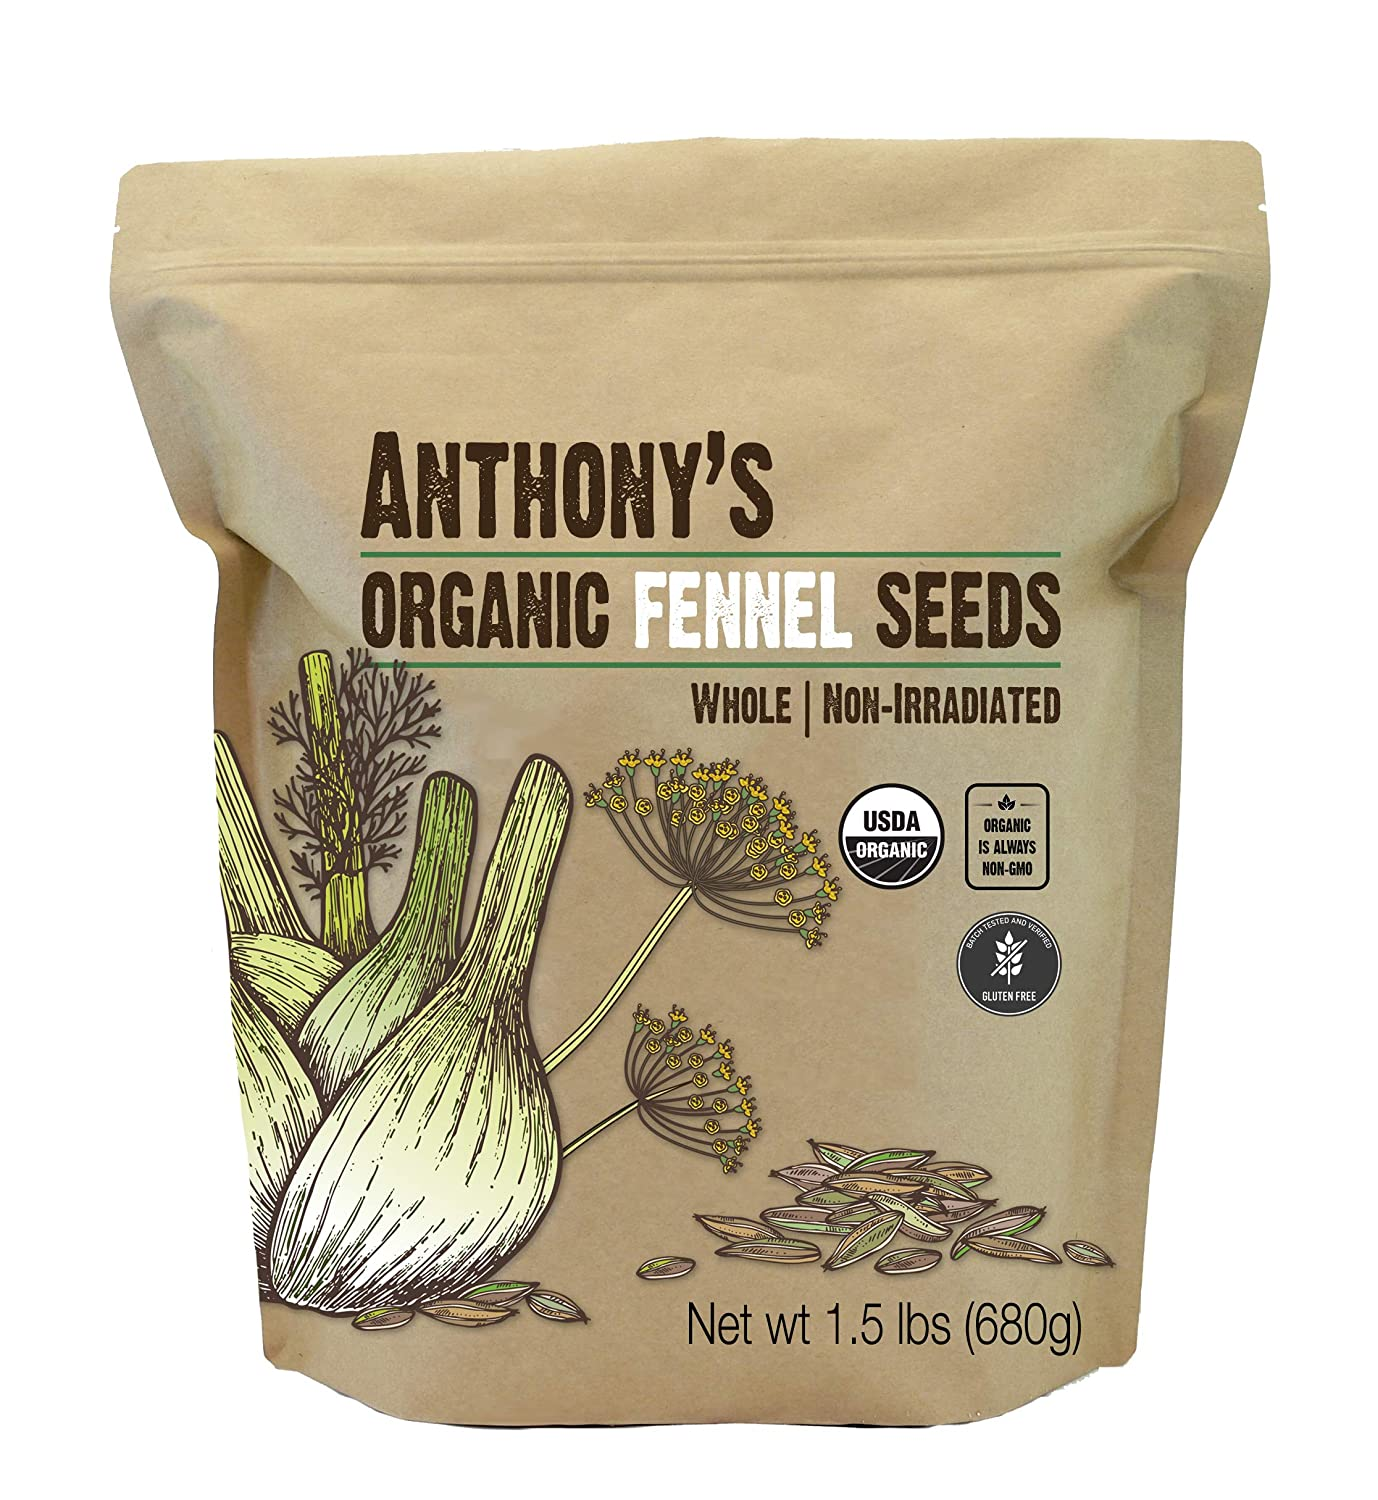 Anthony's Organic Fennel Seeds, 1.5 lb, Whole Seeds, Non Irradiated, Gluten Free, Non GMO